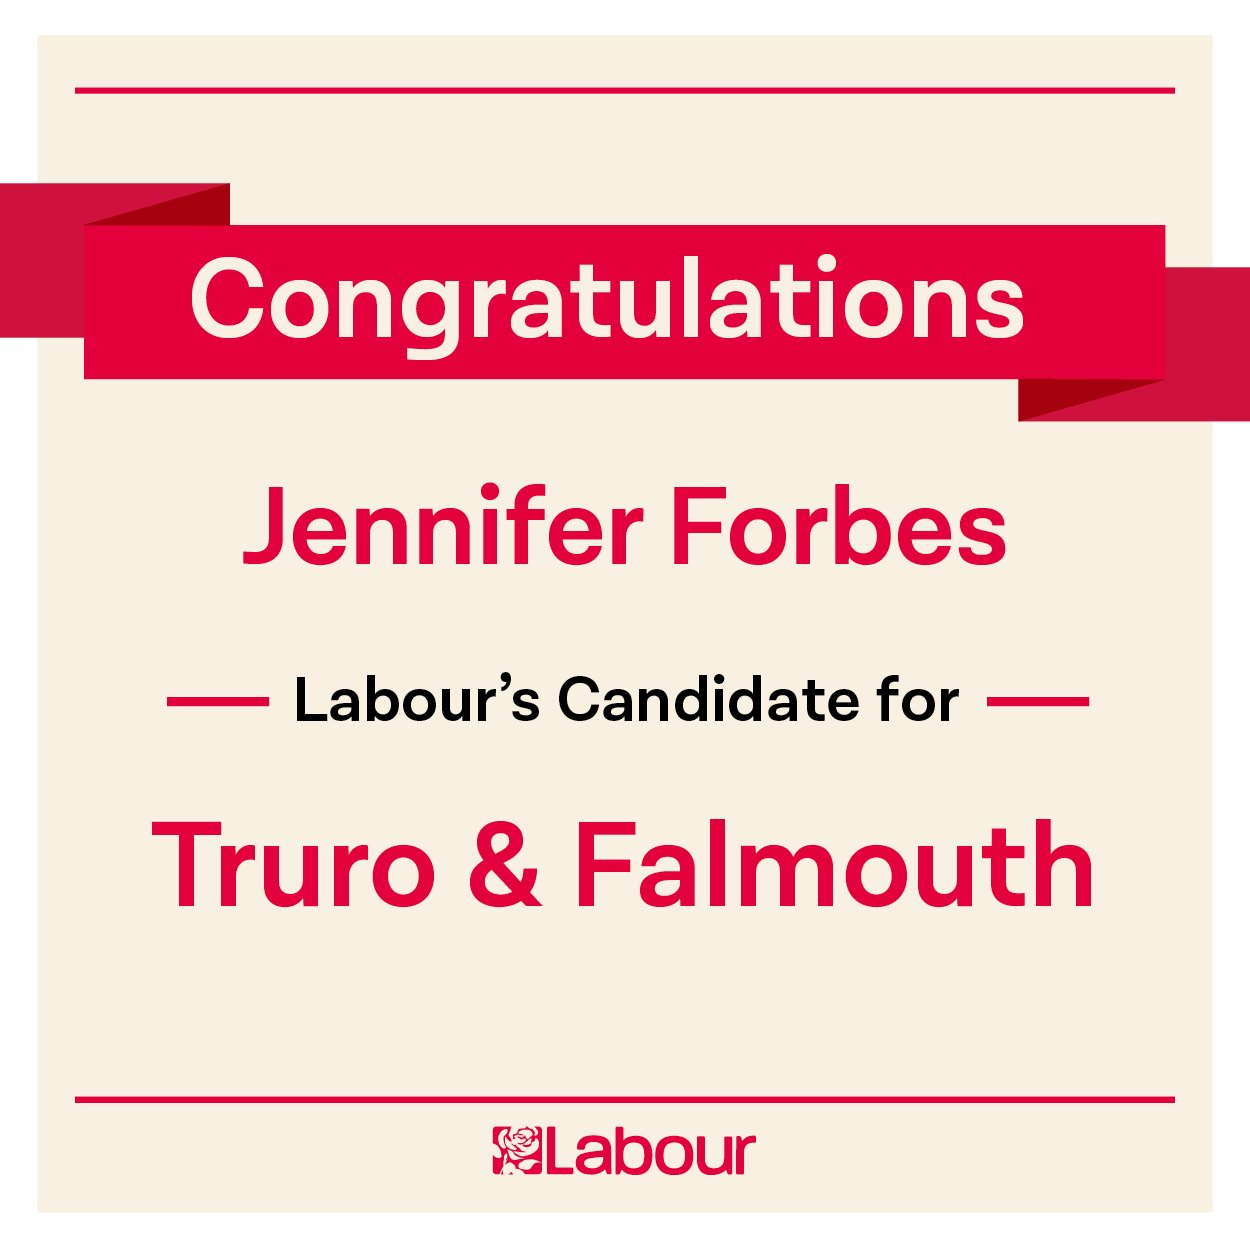 Congratulations Jennifer Forbes (@ifferforbes), Labour's candidate for Truro and Falmouth! https://t.co/39kVYnkISi